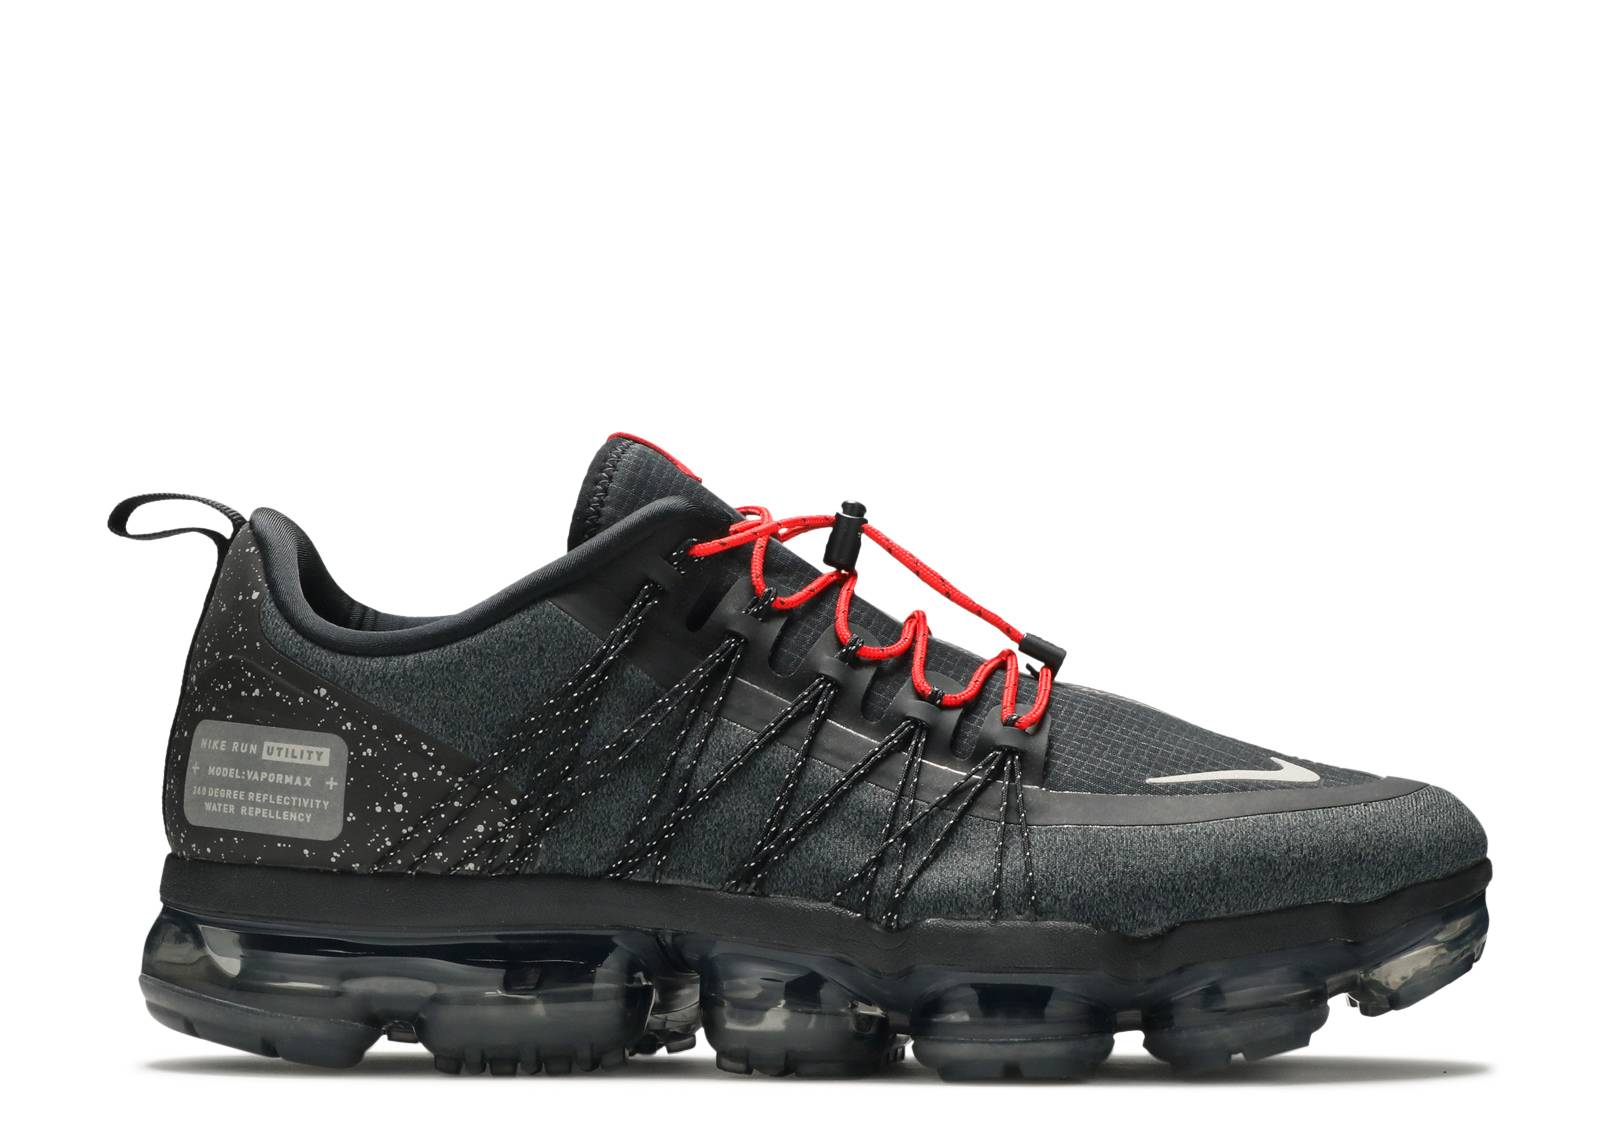 cb73a74d2239 Nike Air Vapormax Run Utility - Nike - aq8810 001 - black reflect ...